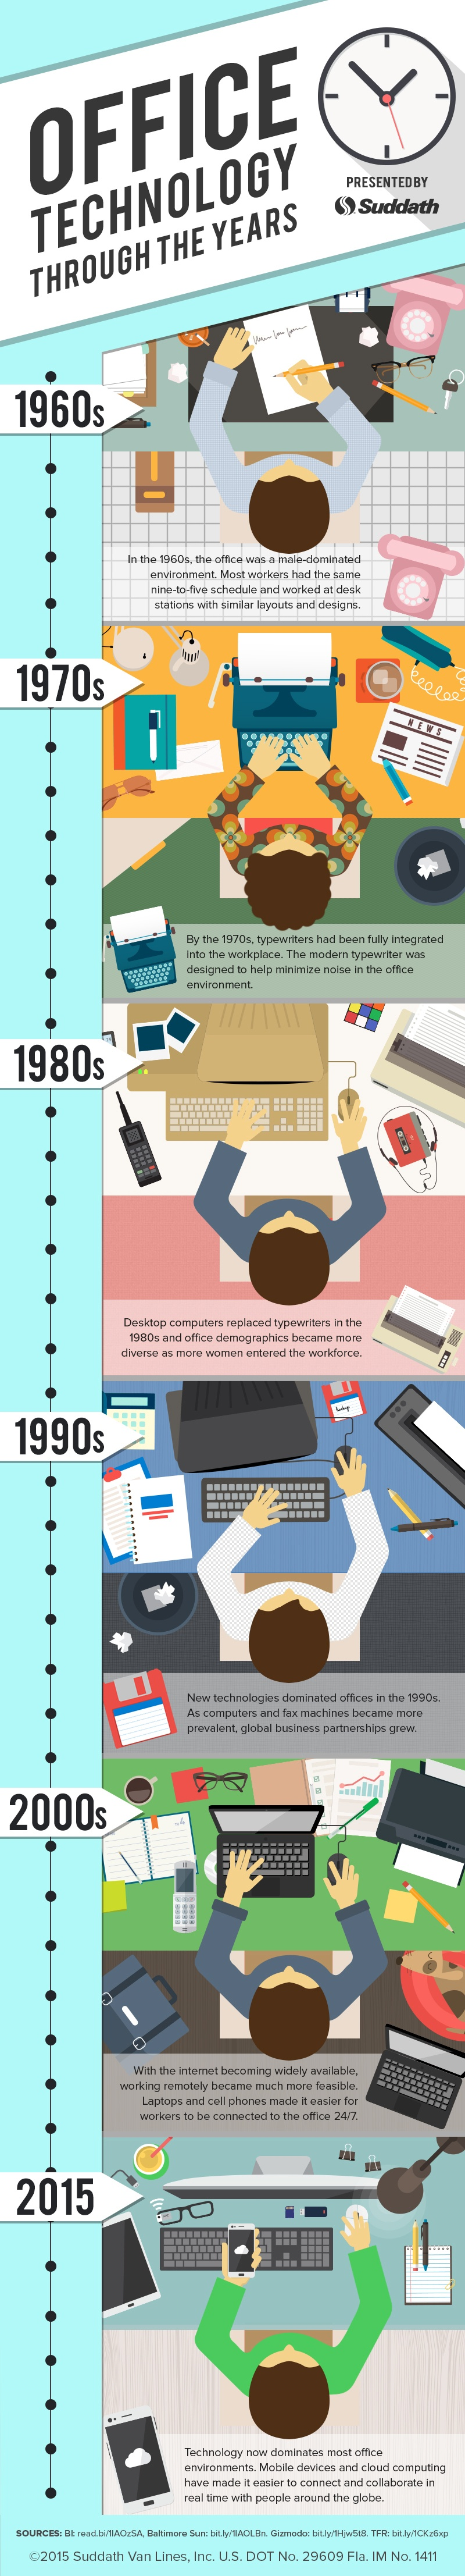 Office Technology Through the Years Infographic